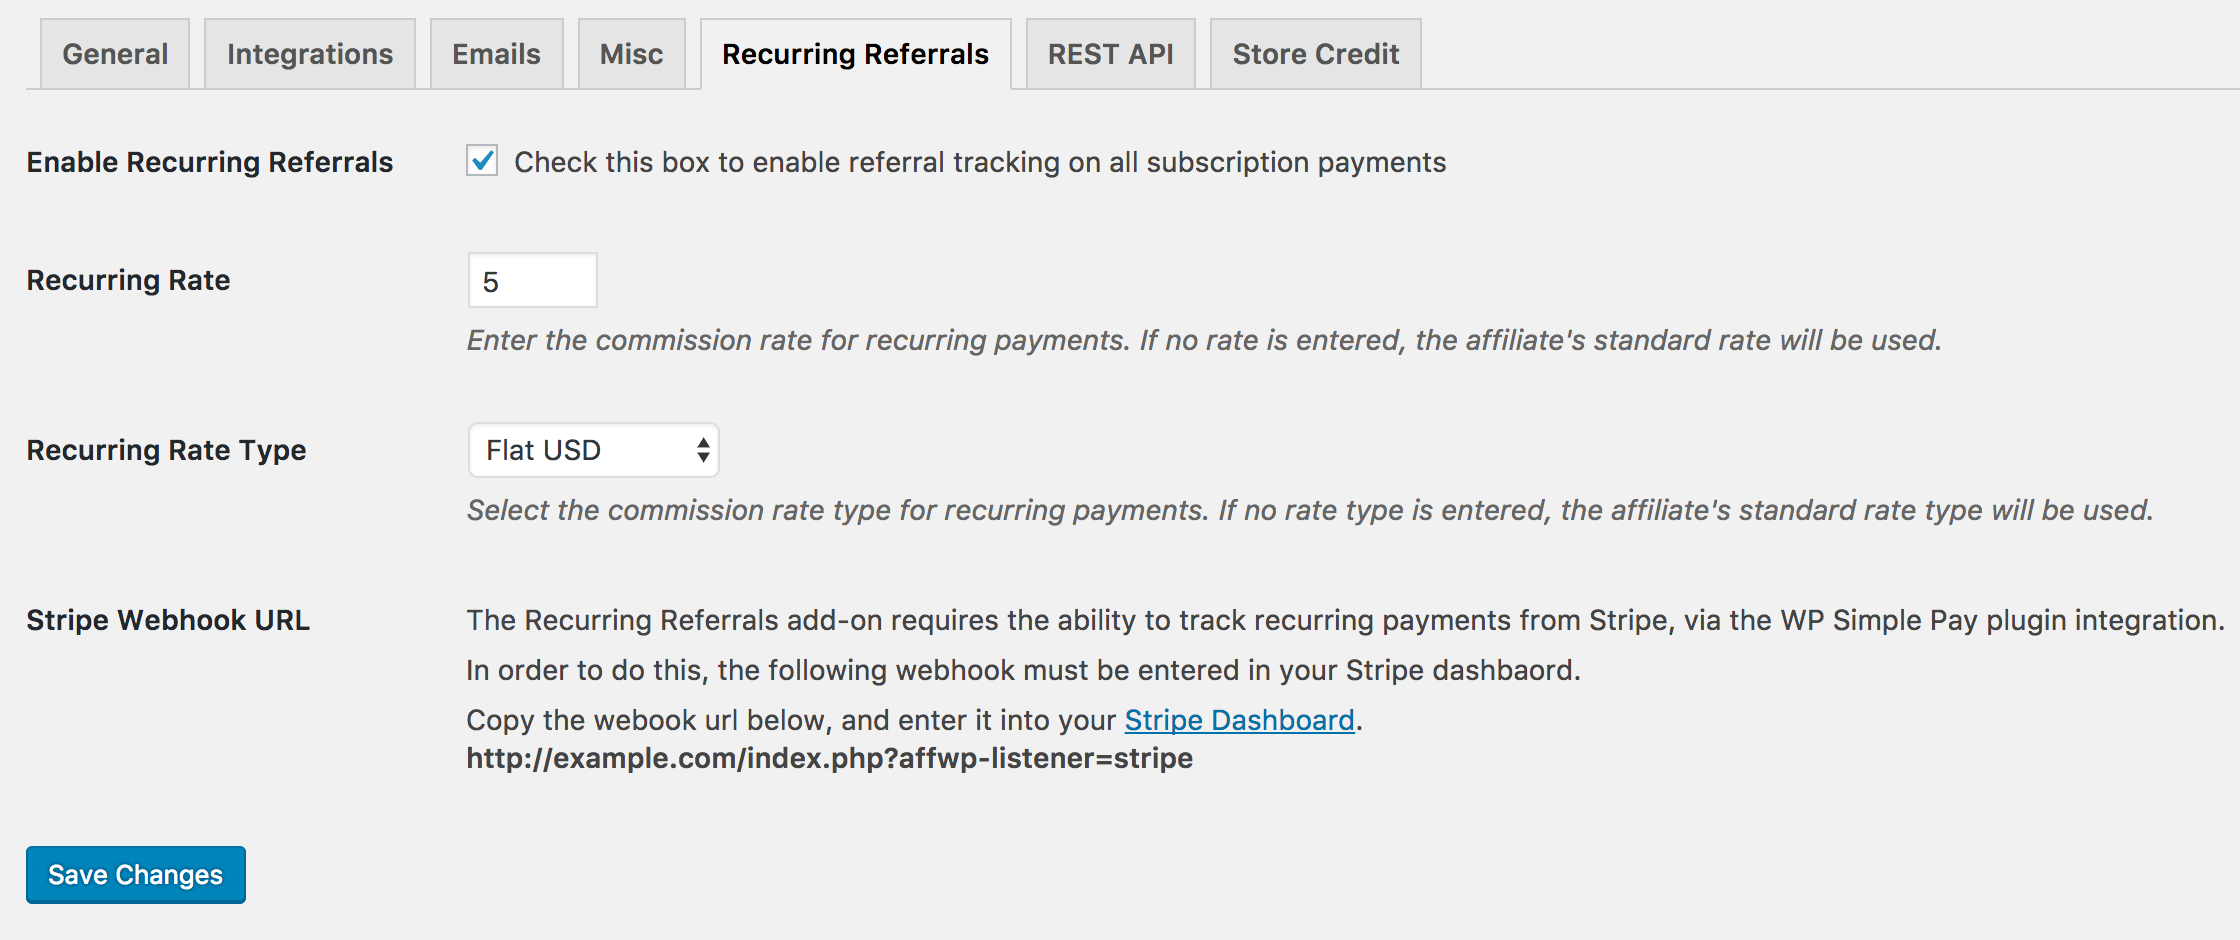 Recurring Referrals webhook url example